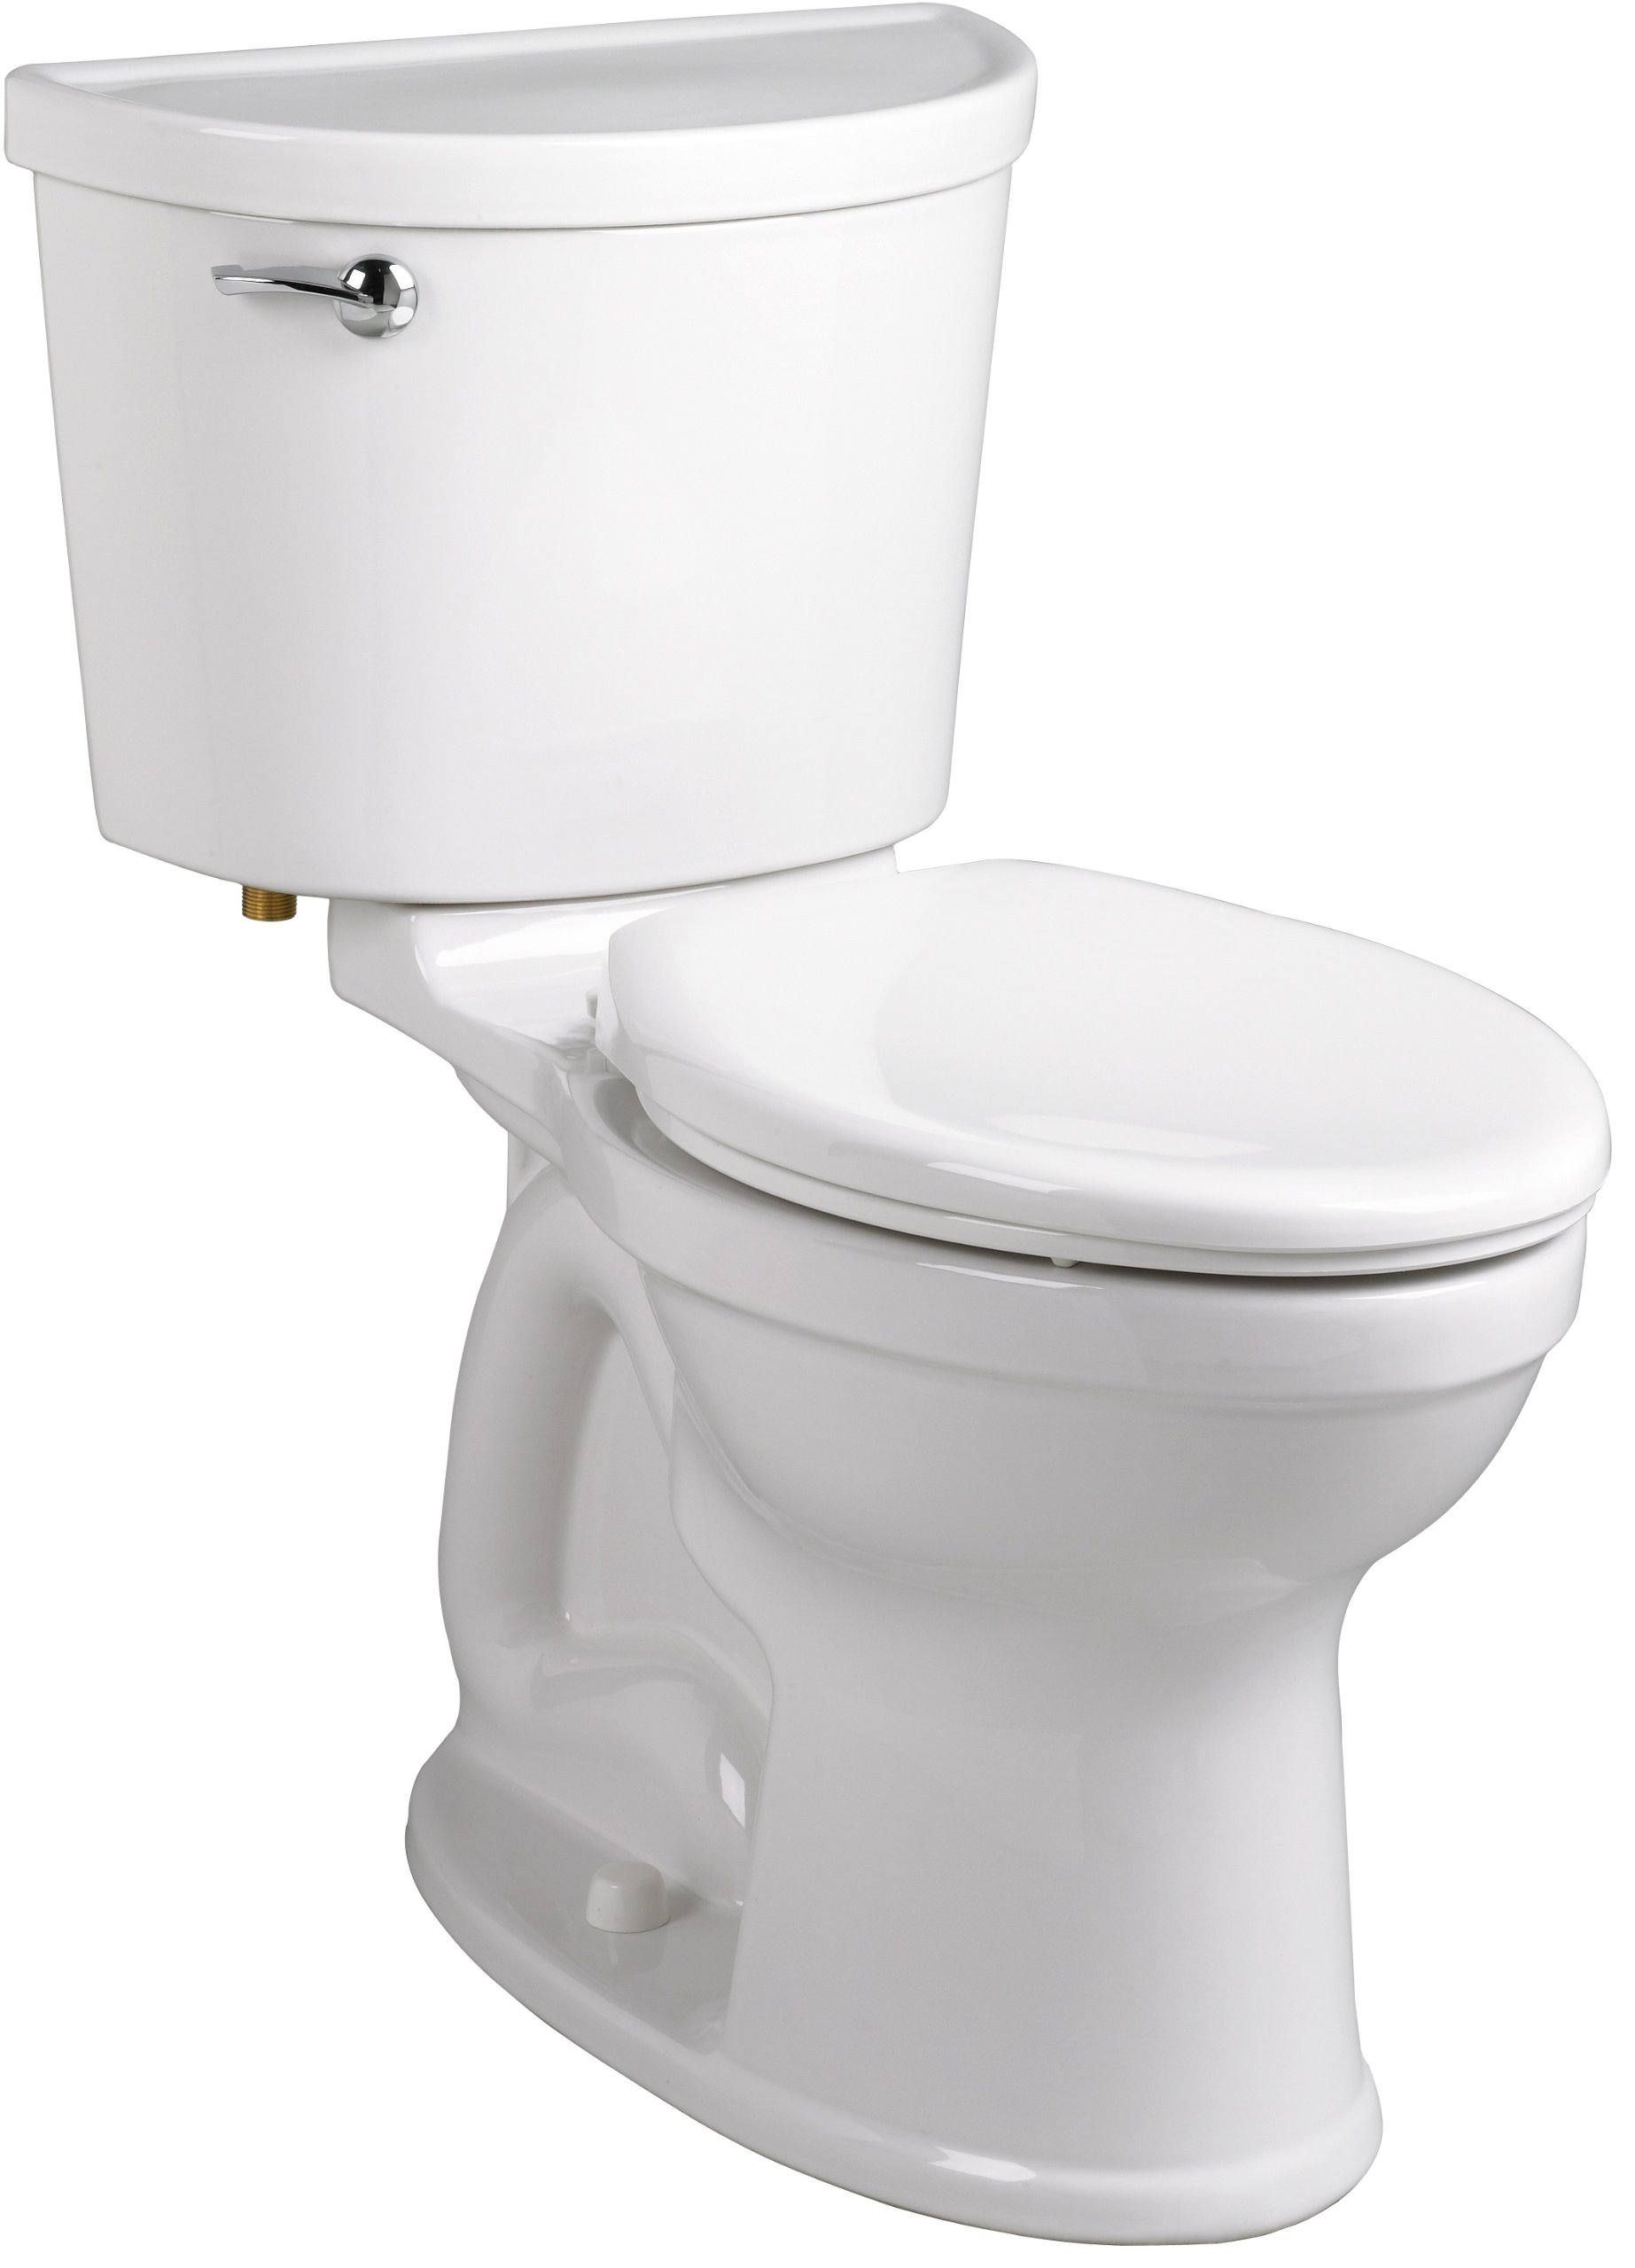 American Standard 211AA.104.020 Champion PRO Right Height 12-Inch Rough-In Elongated Toilet Combination Less Seat, White